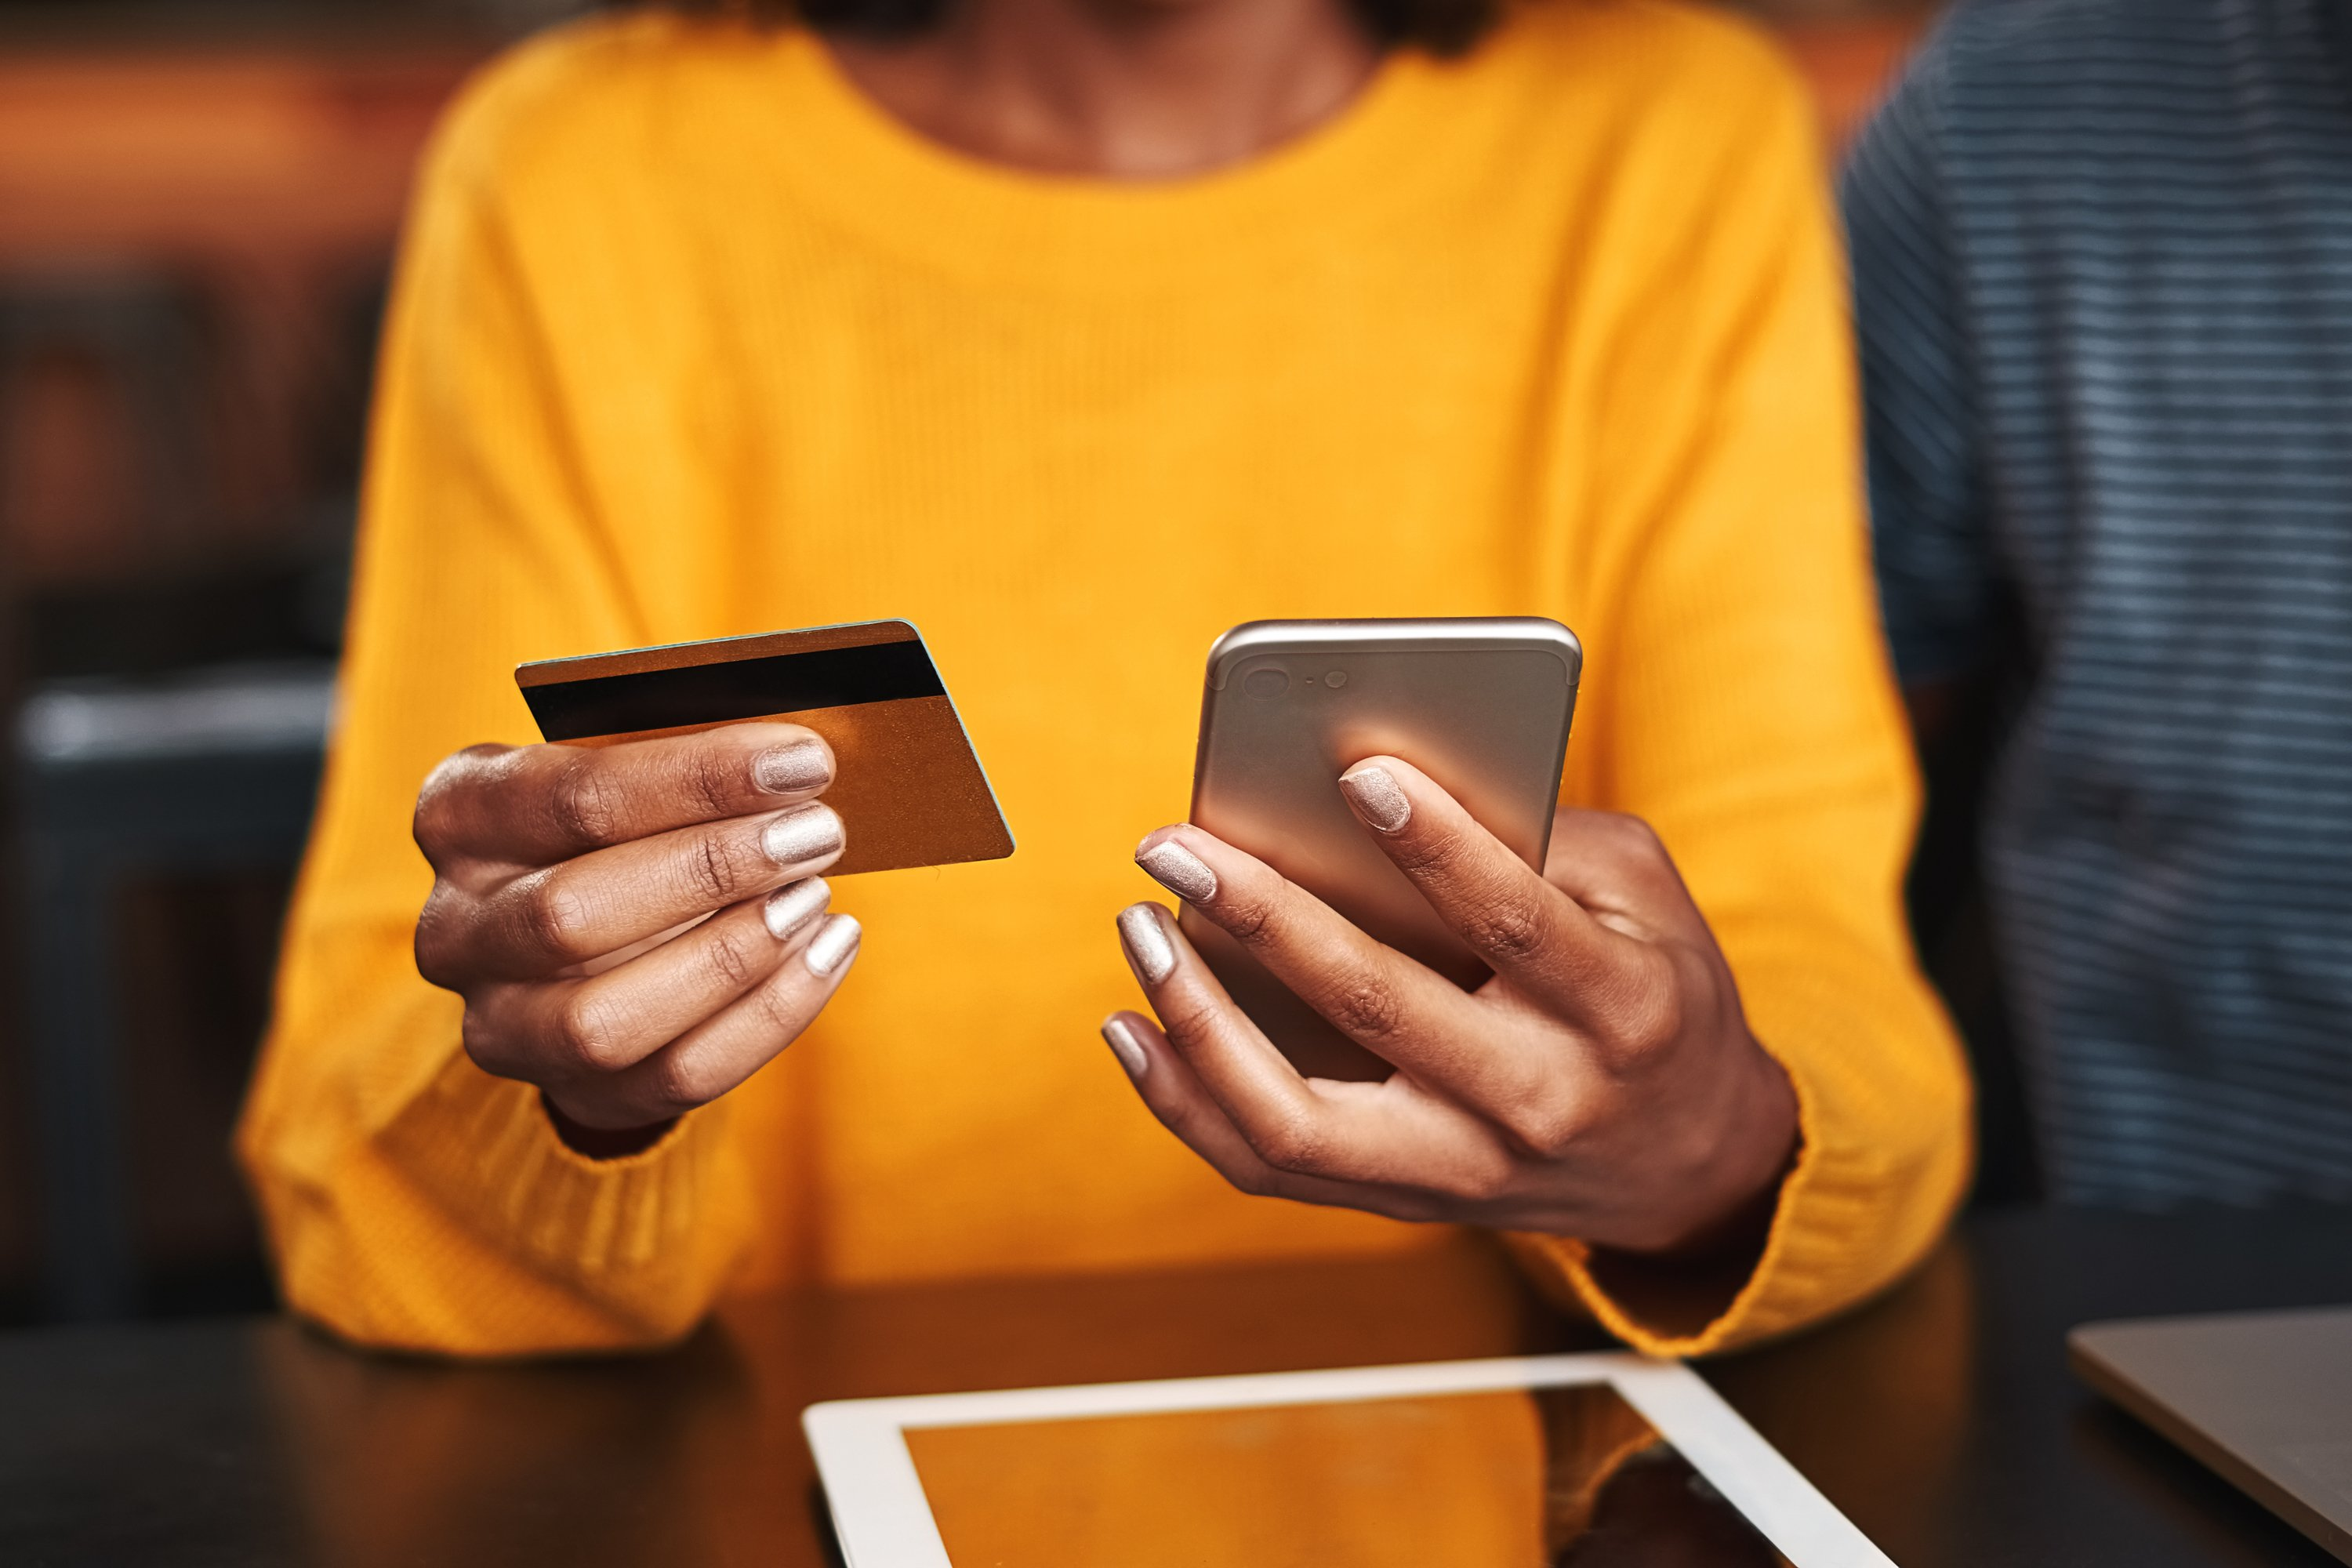 Opinion: Retail must enrich the online experience with fulfillment-focused tactics